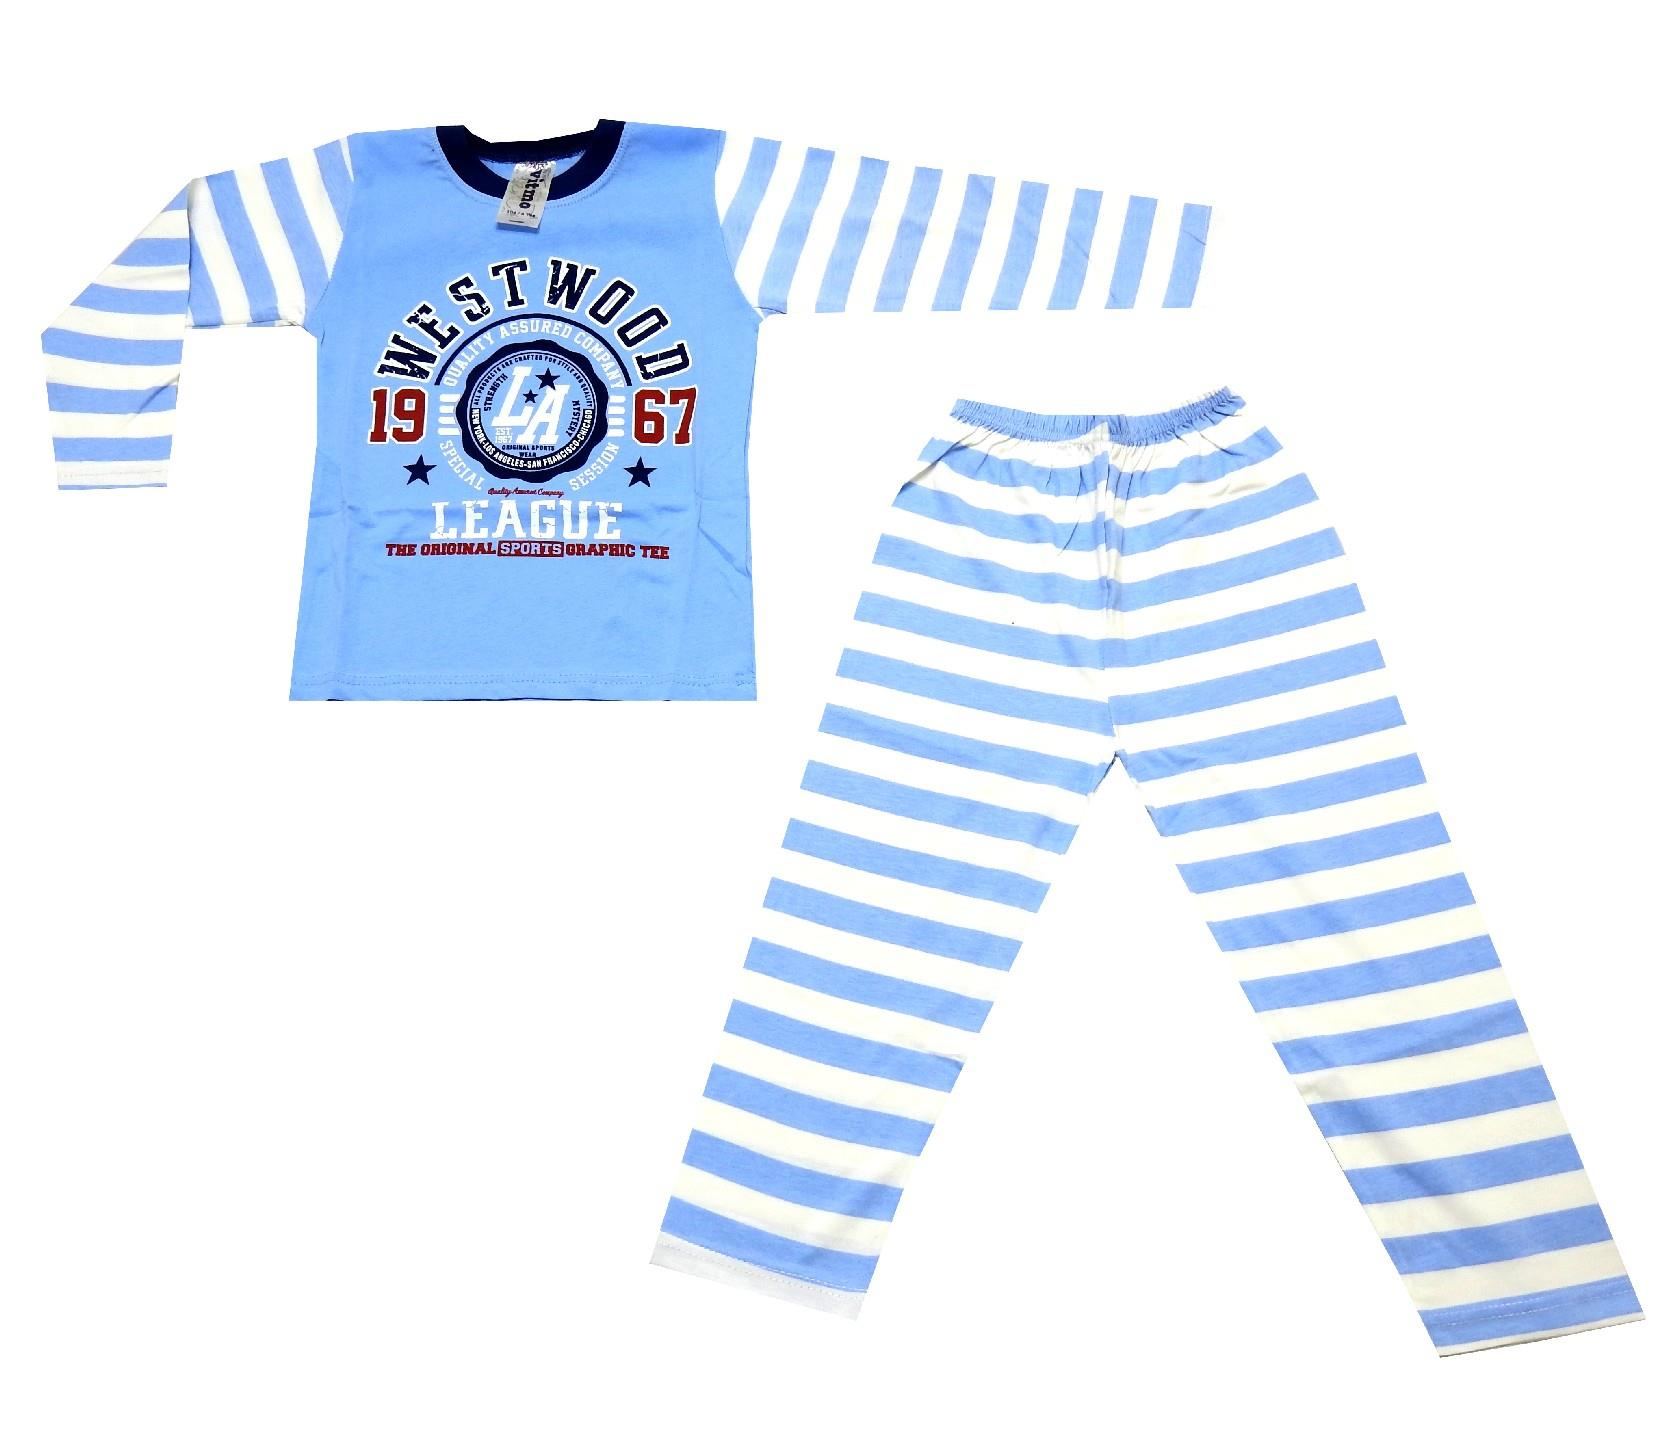 WESTWOOD 1967 PRINTED DEIGN PYJAMAS DOUBLE SET FOR GIRL (4-5-6 AGE)